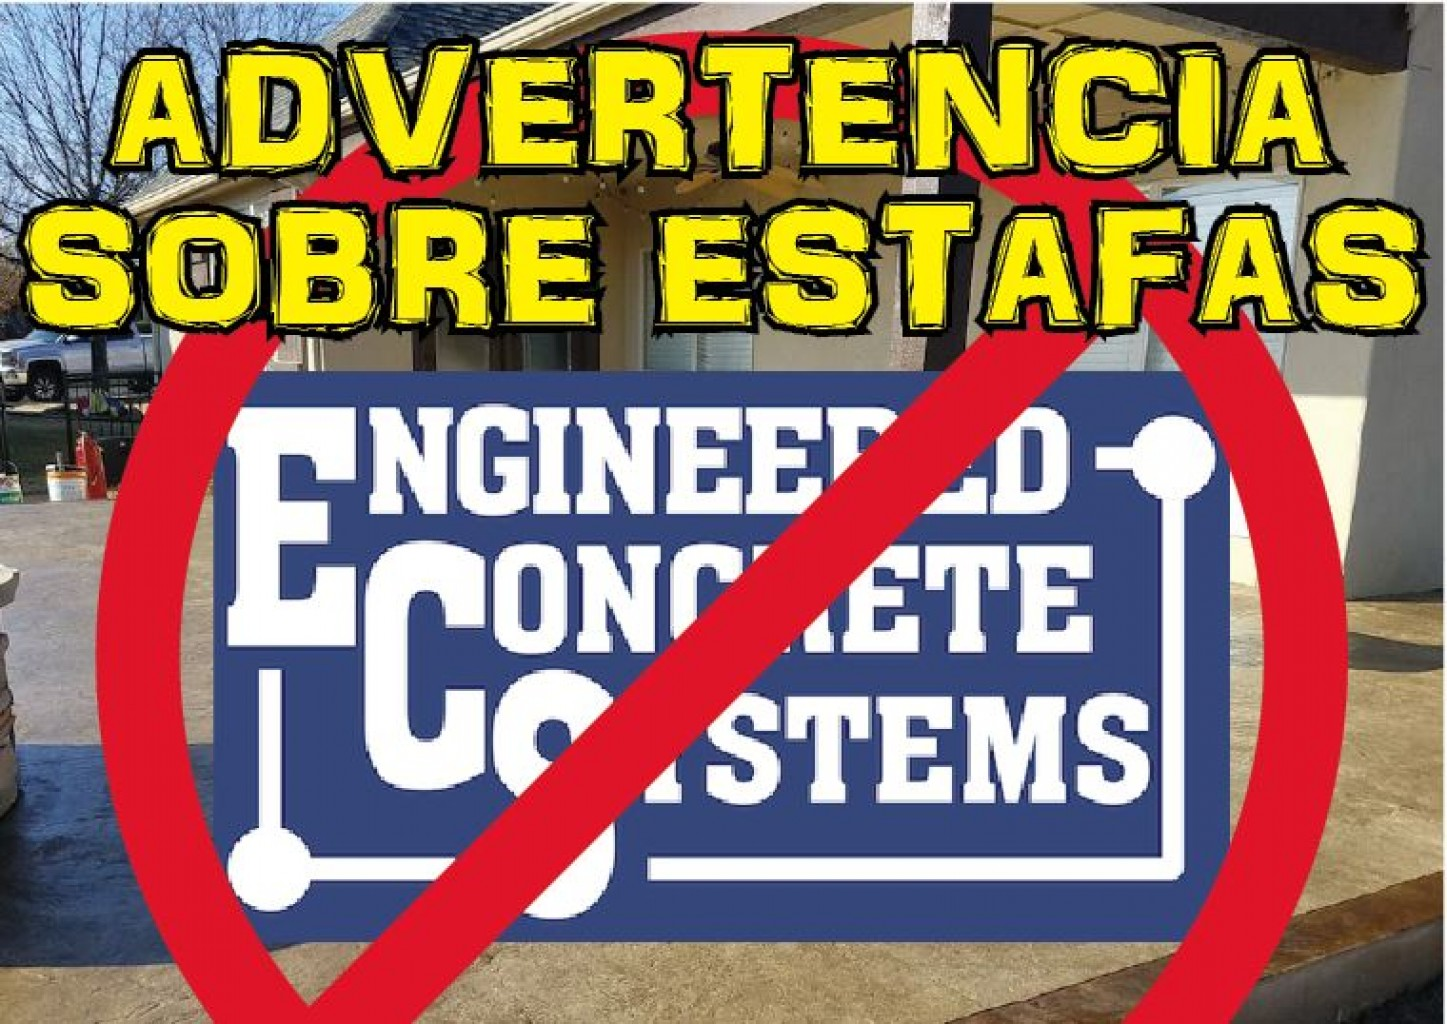 BBB y HBA emiten advertencia sobre Estafas